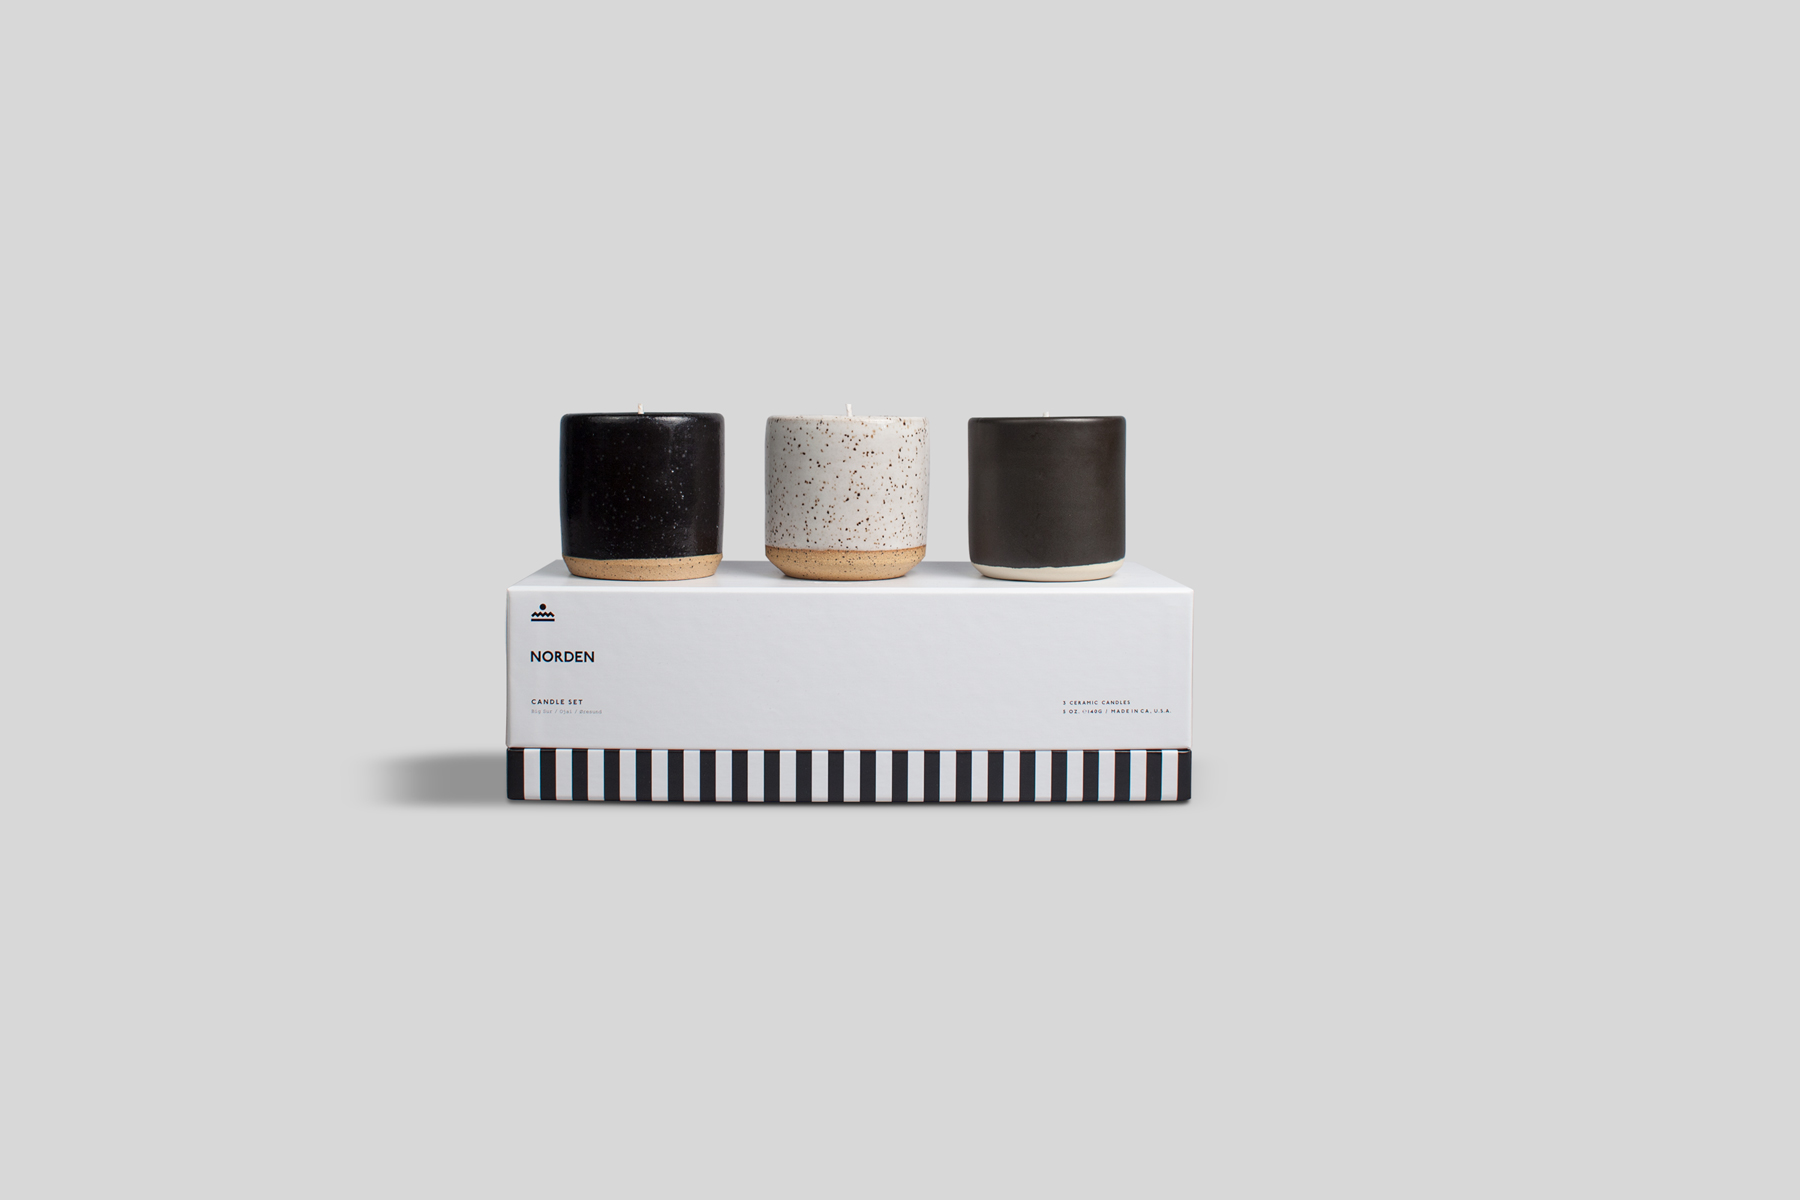 Norden Goods - 3 pack candle set.This set comes with three 5 oz. ceramic candles -Øresund, Ojai, and Big Sur. Each candle is made with a coconut/apricot wax blend and comes in a beautiful, modern, &reusable stoneware container.